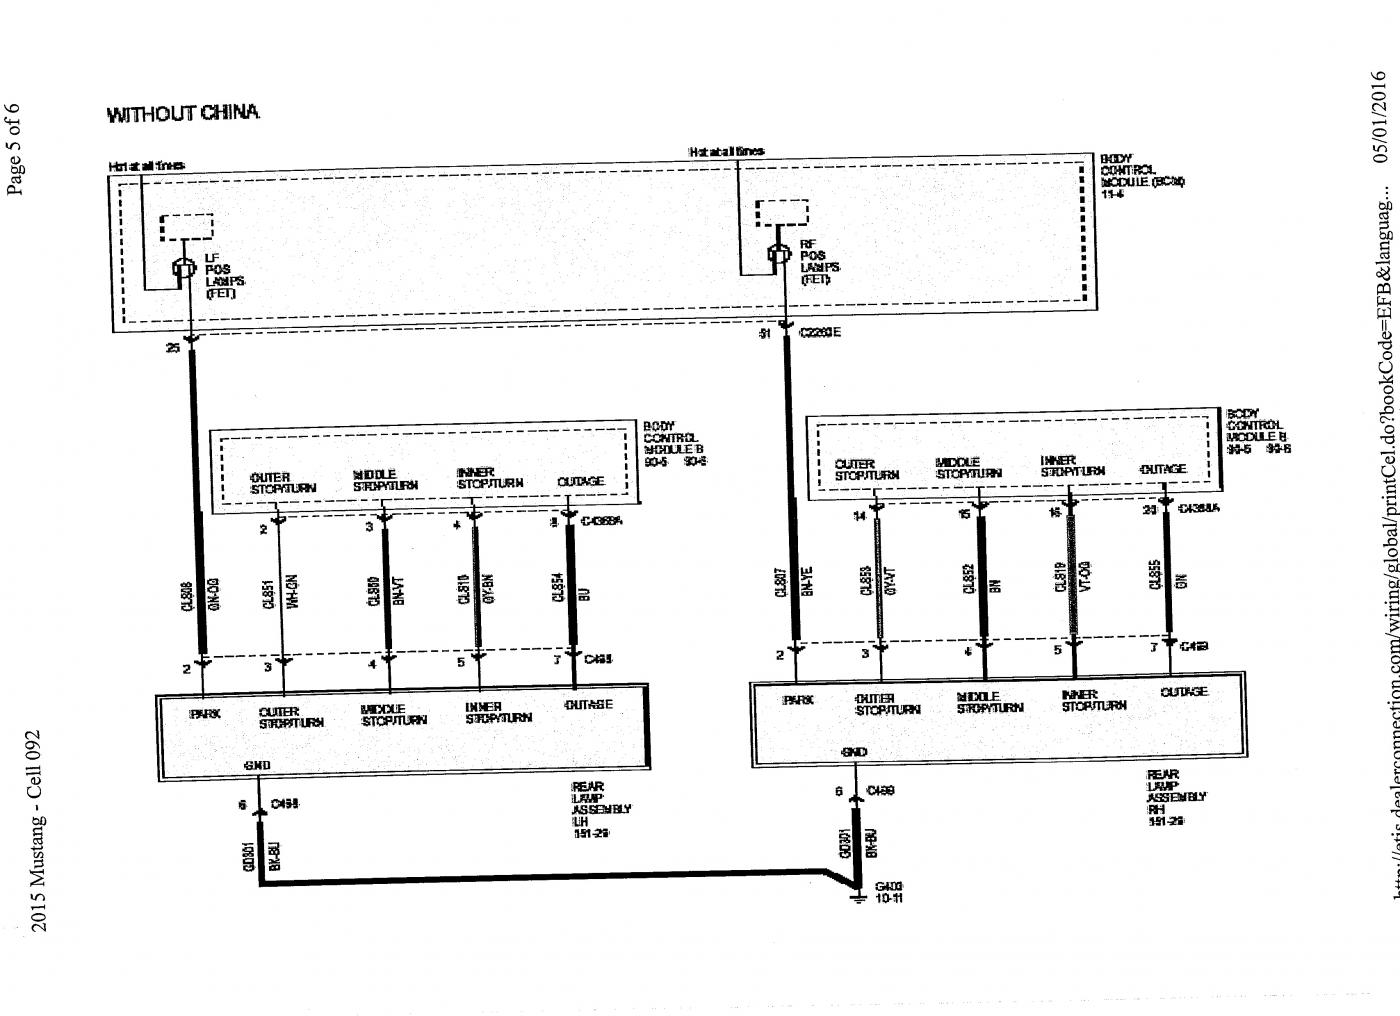 Wiring Page 5 of 6.jpg